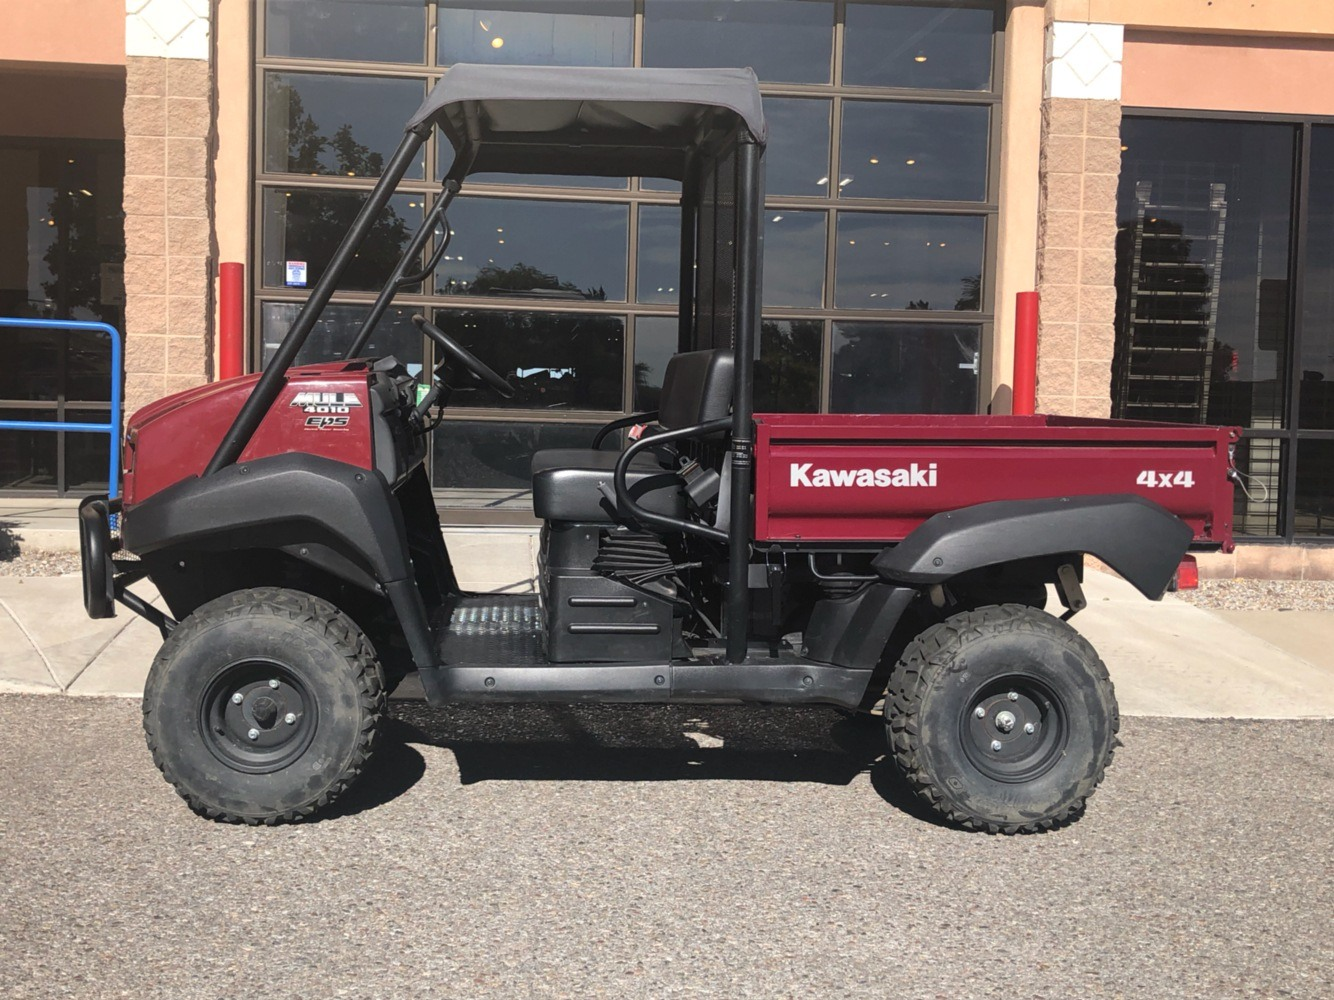 2018 Kawasaki Mule 4010 4x4 in Albuquerque, New Mexico - Photo 4